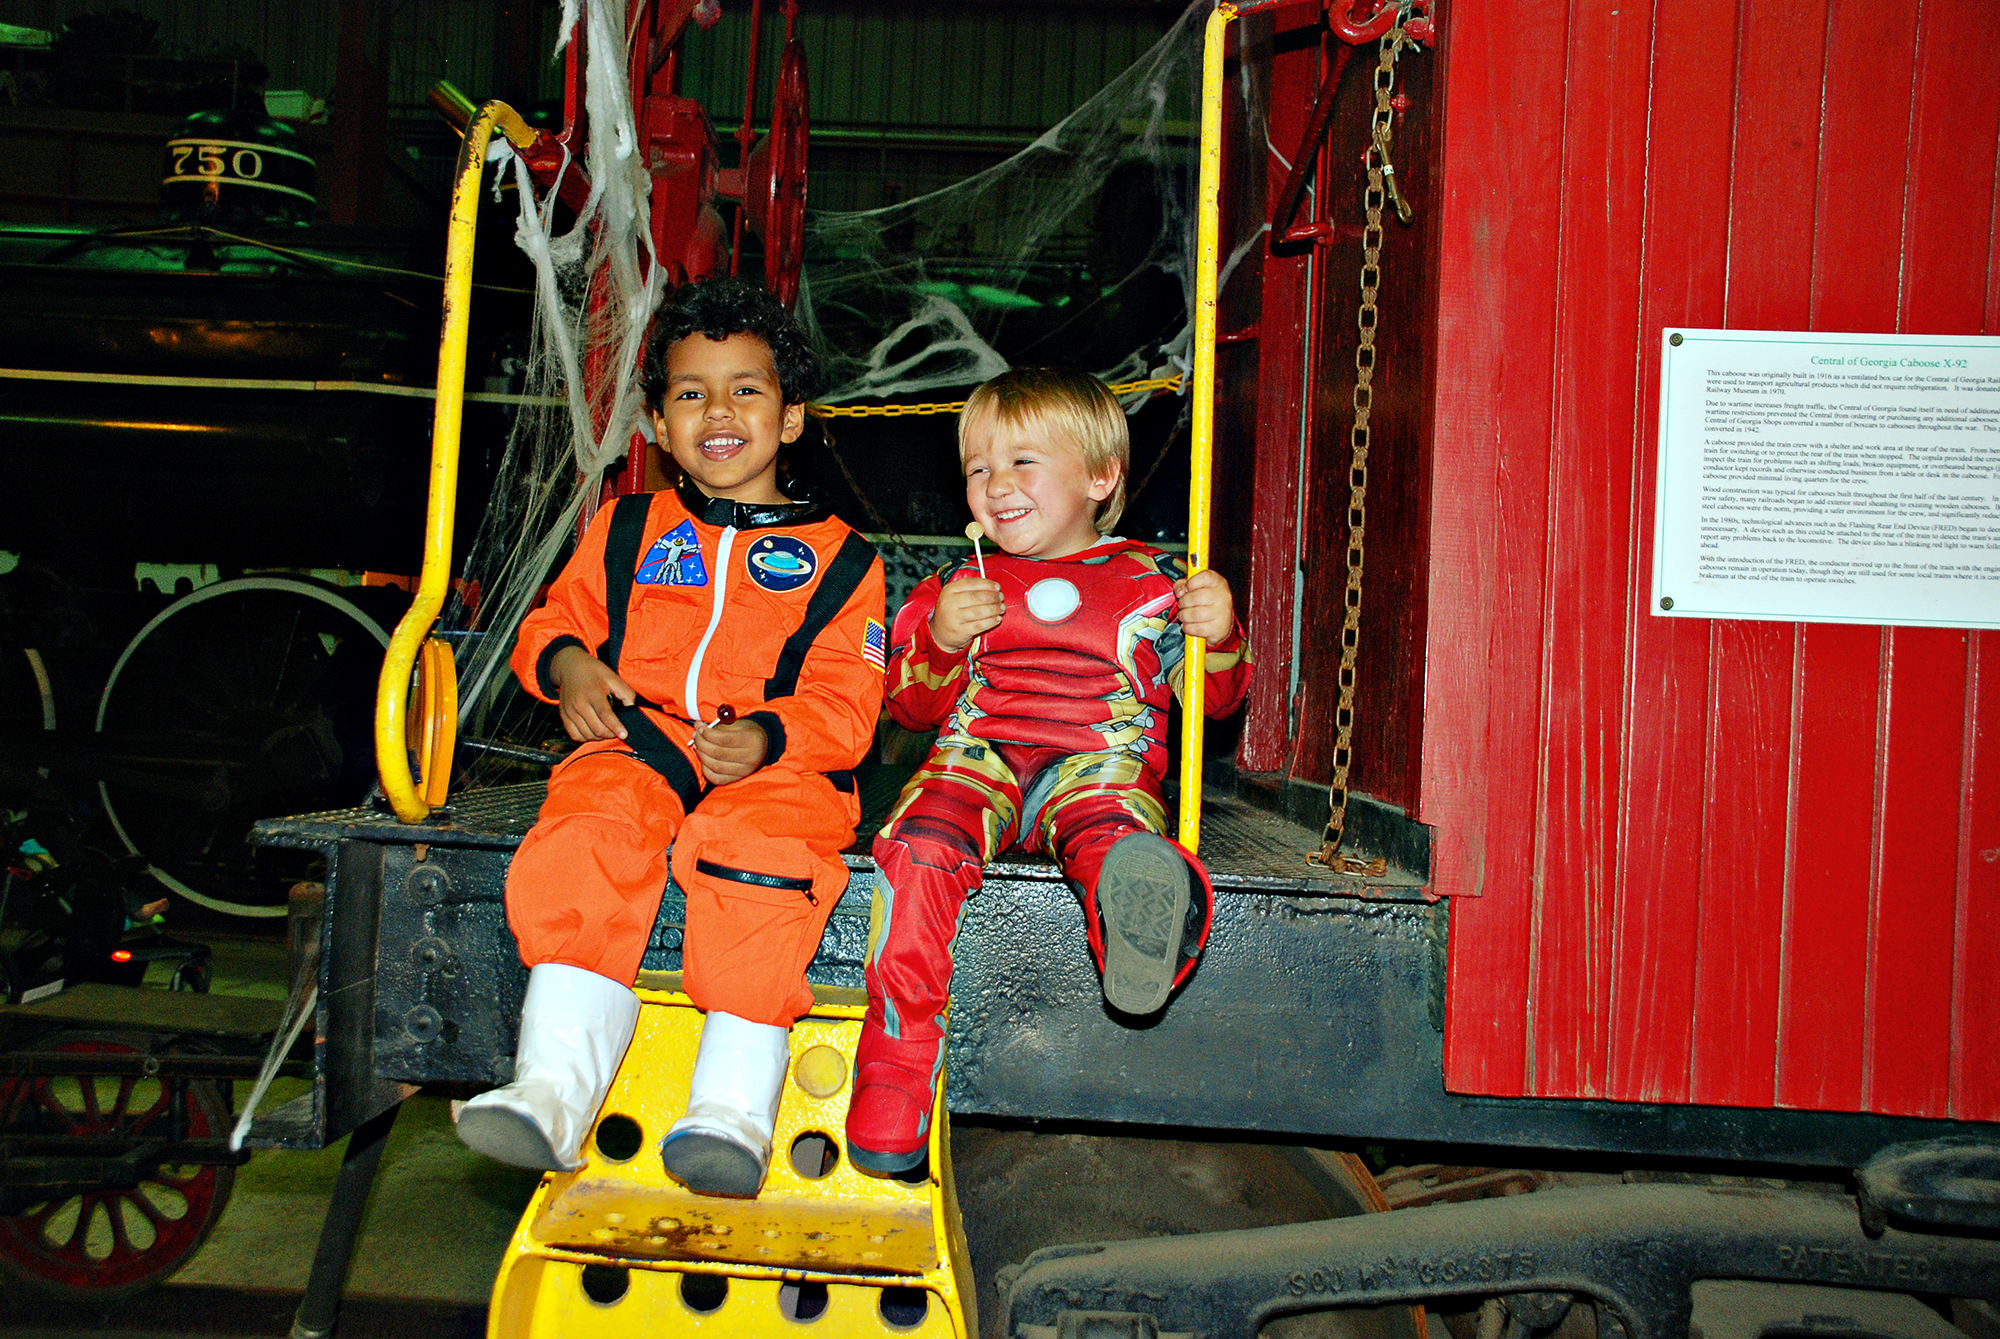 Two boys sit and laugh on the end of a train caboose, while dressed in costumes and eating candy, at Train or Treat - an annual Halloween event at Southeastern Railway Museum.